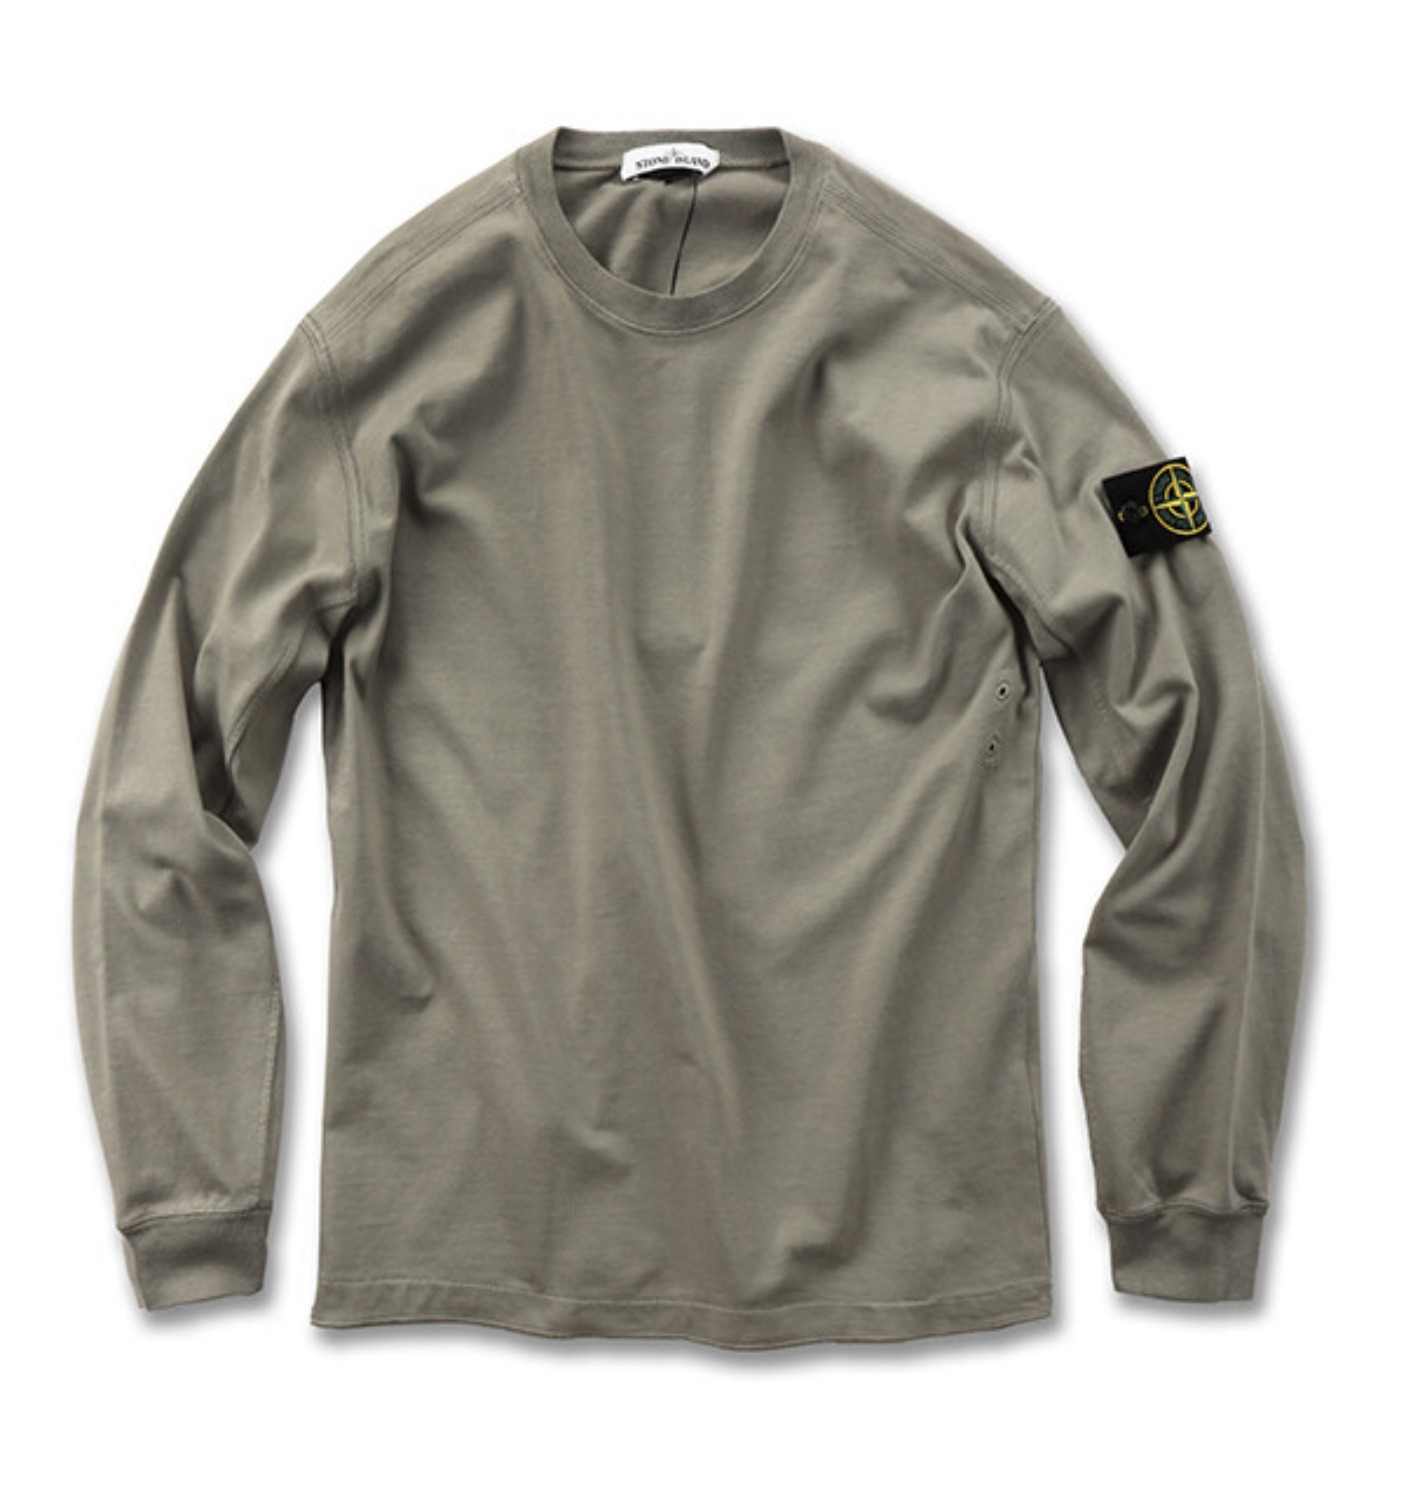 GARMENT DYED CREWNECK SWEATSHIRT LIGHT OLIVE